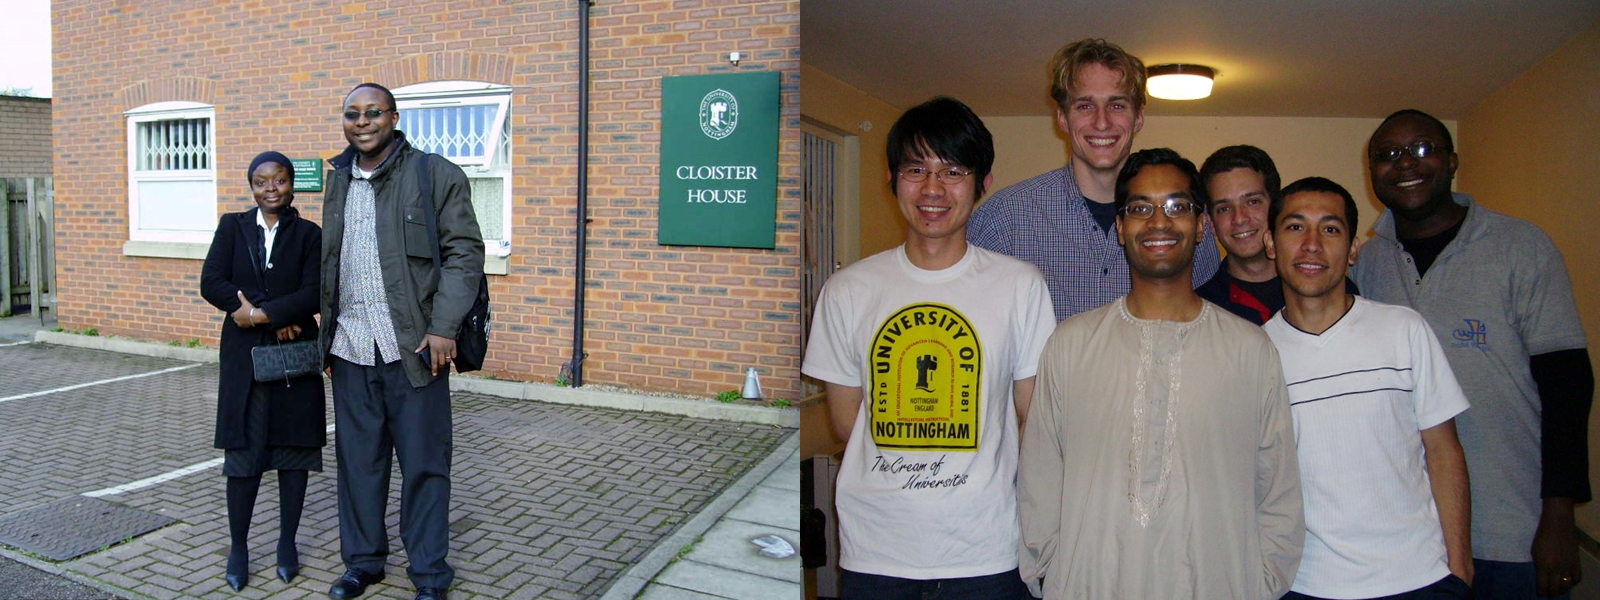 Nana with housemates and friends at Cloister House student accommodation in Nottingham